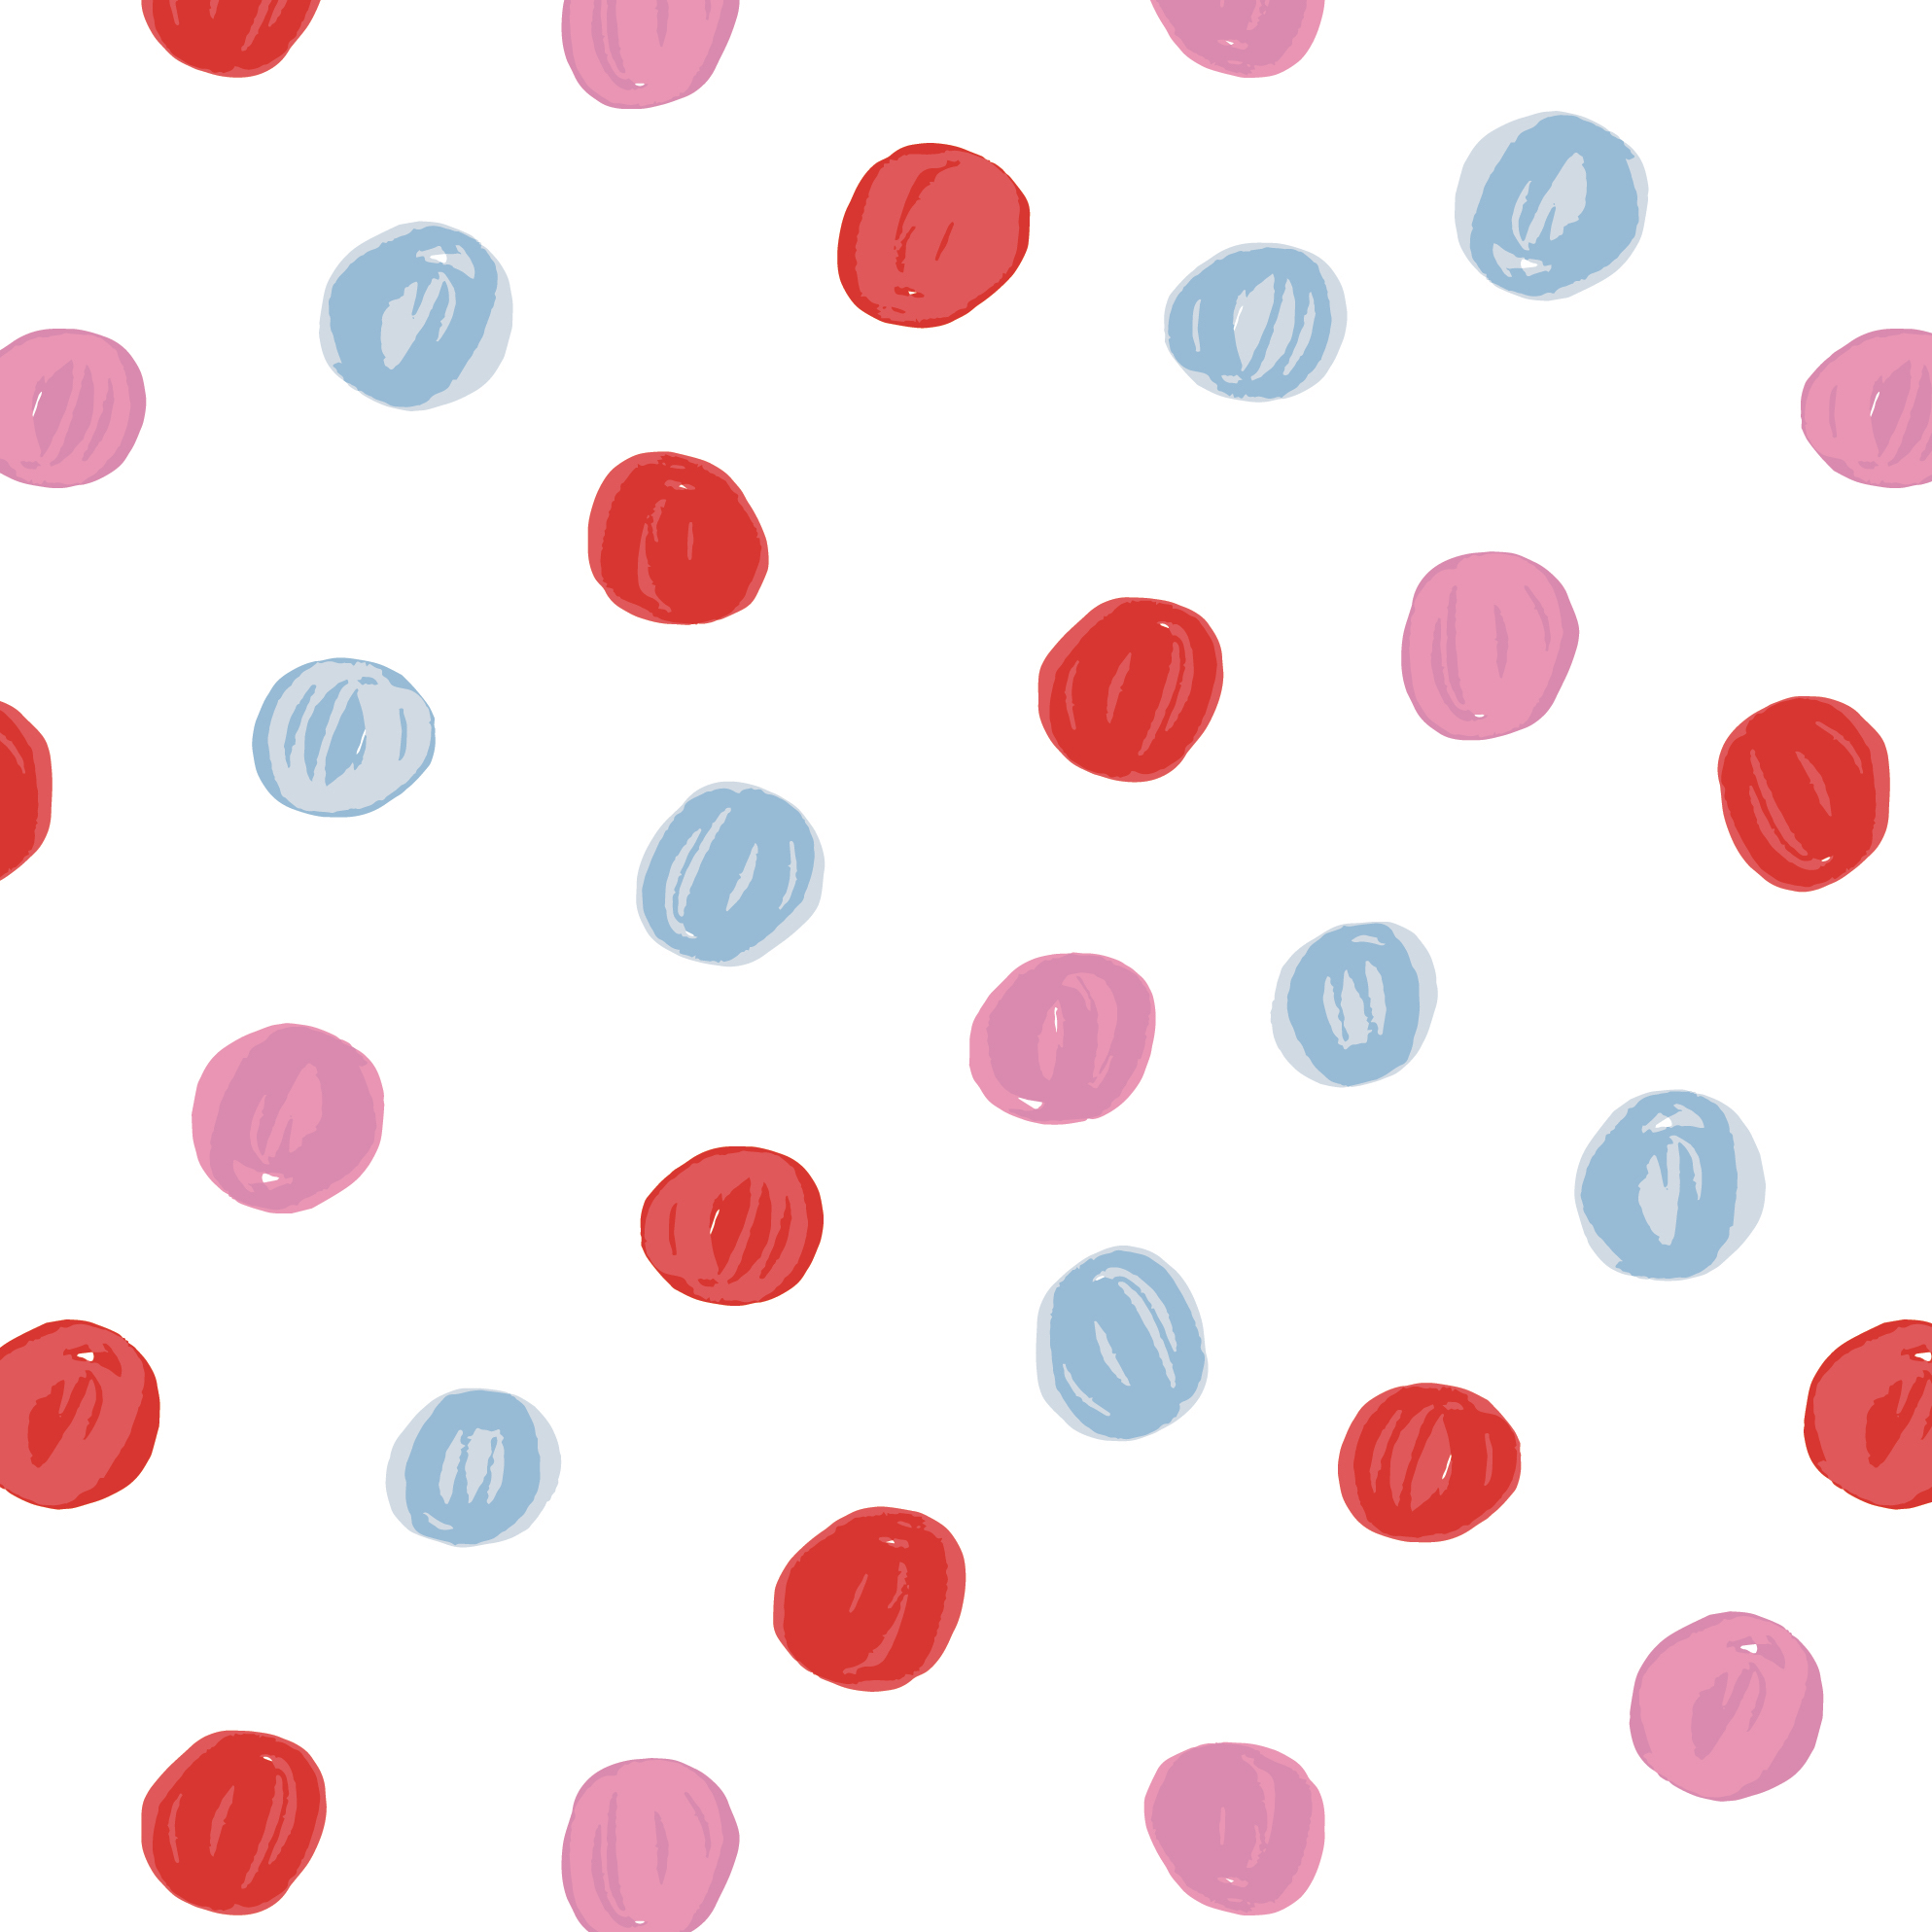 Marked Dots-01.jpg